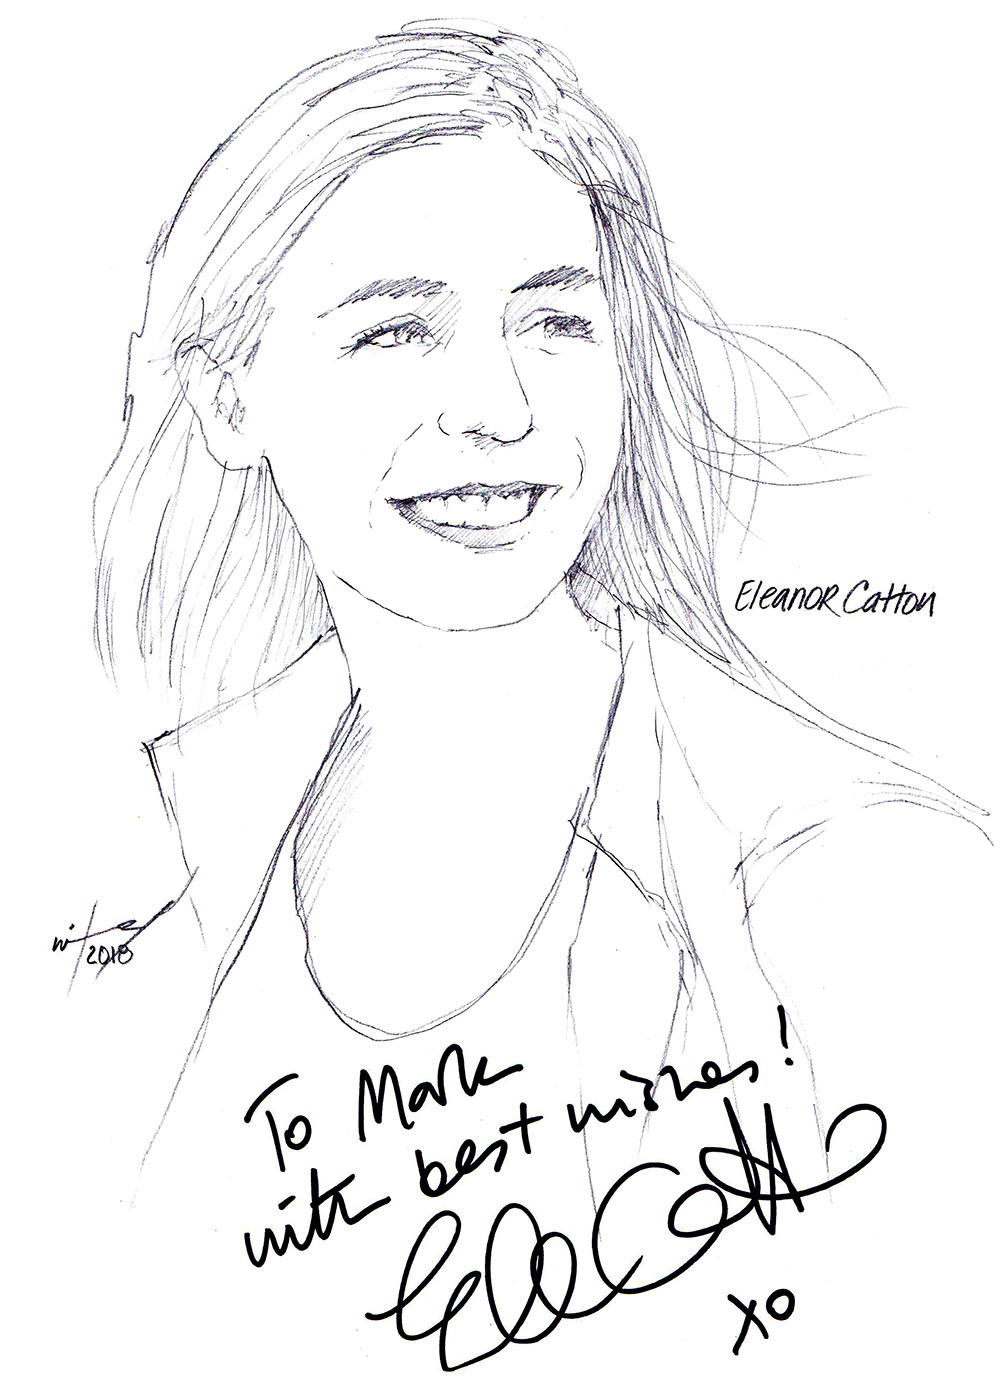 Autographed drawing of author Eleanor Catton